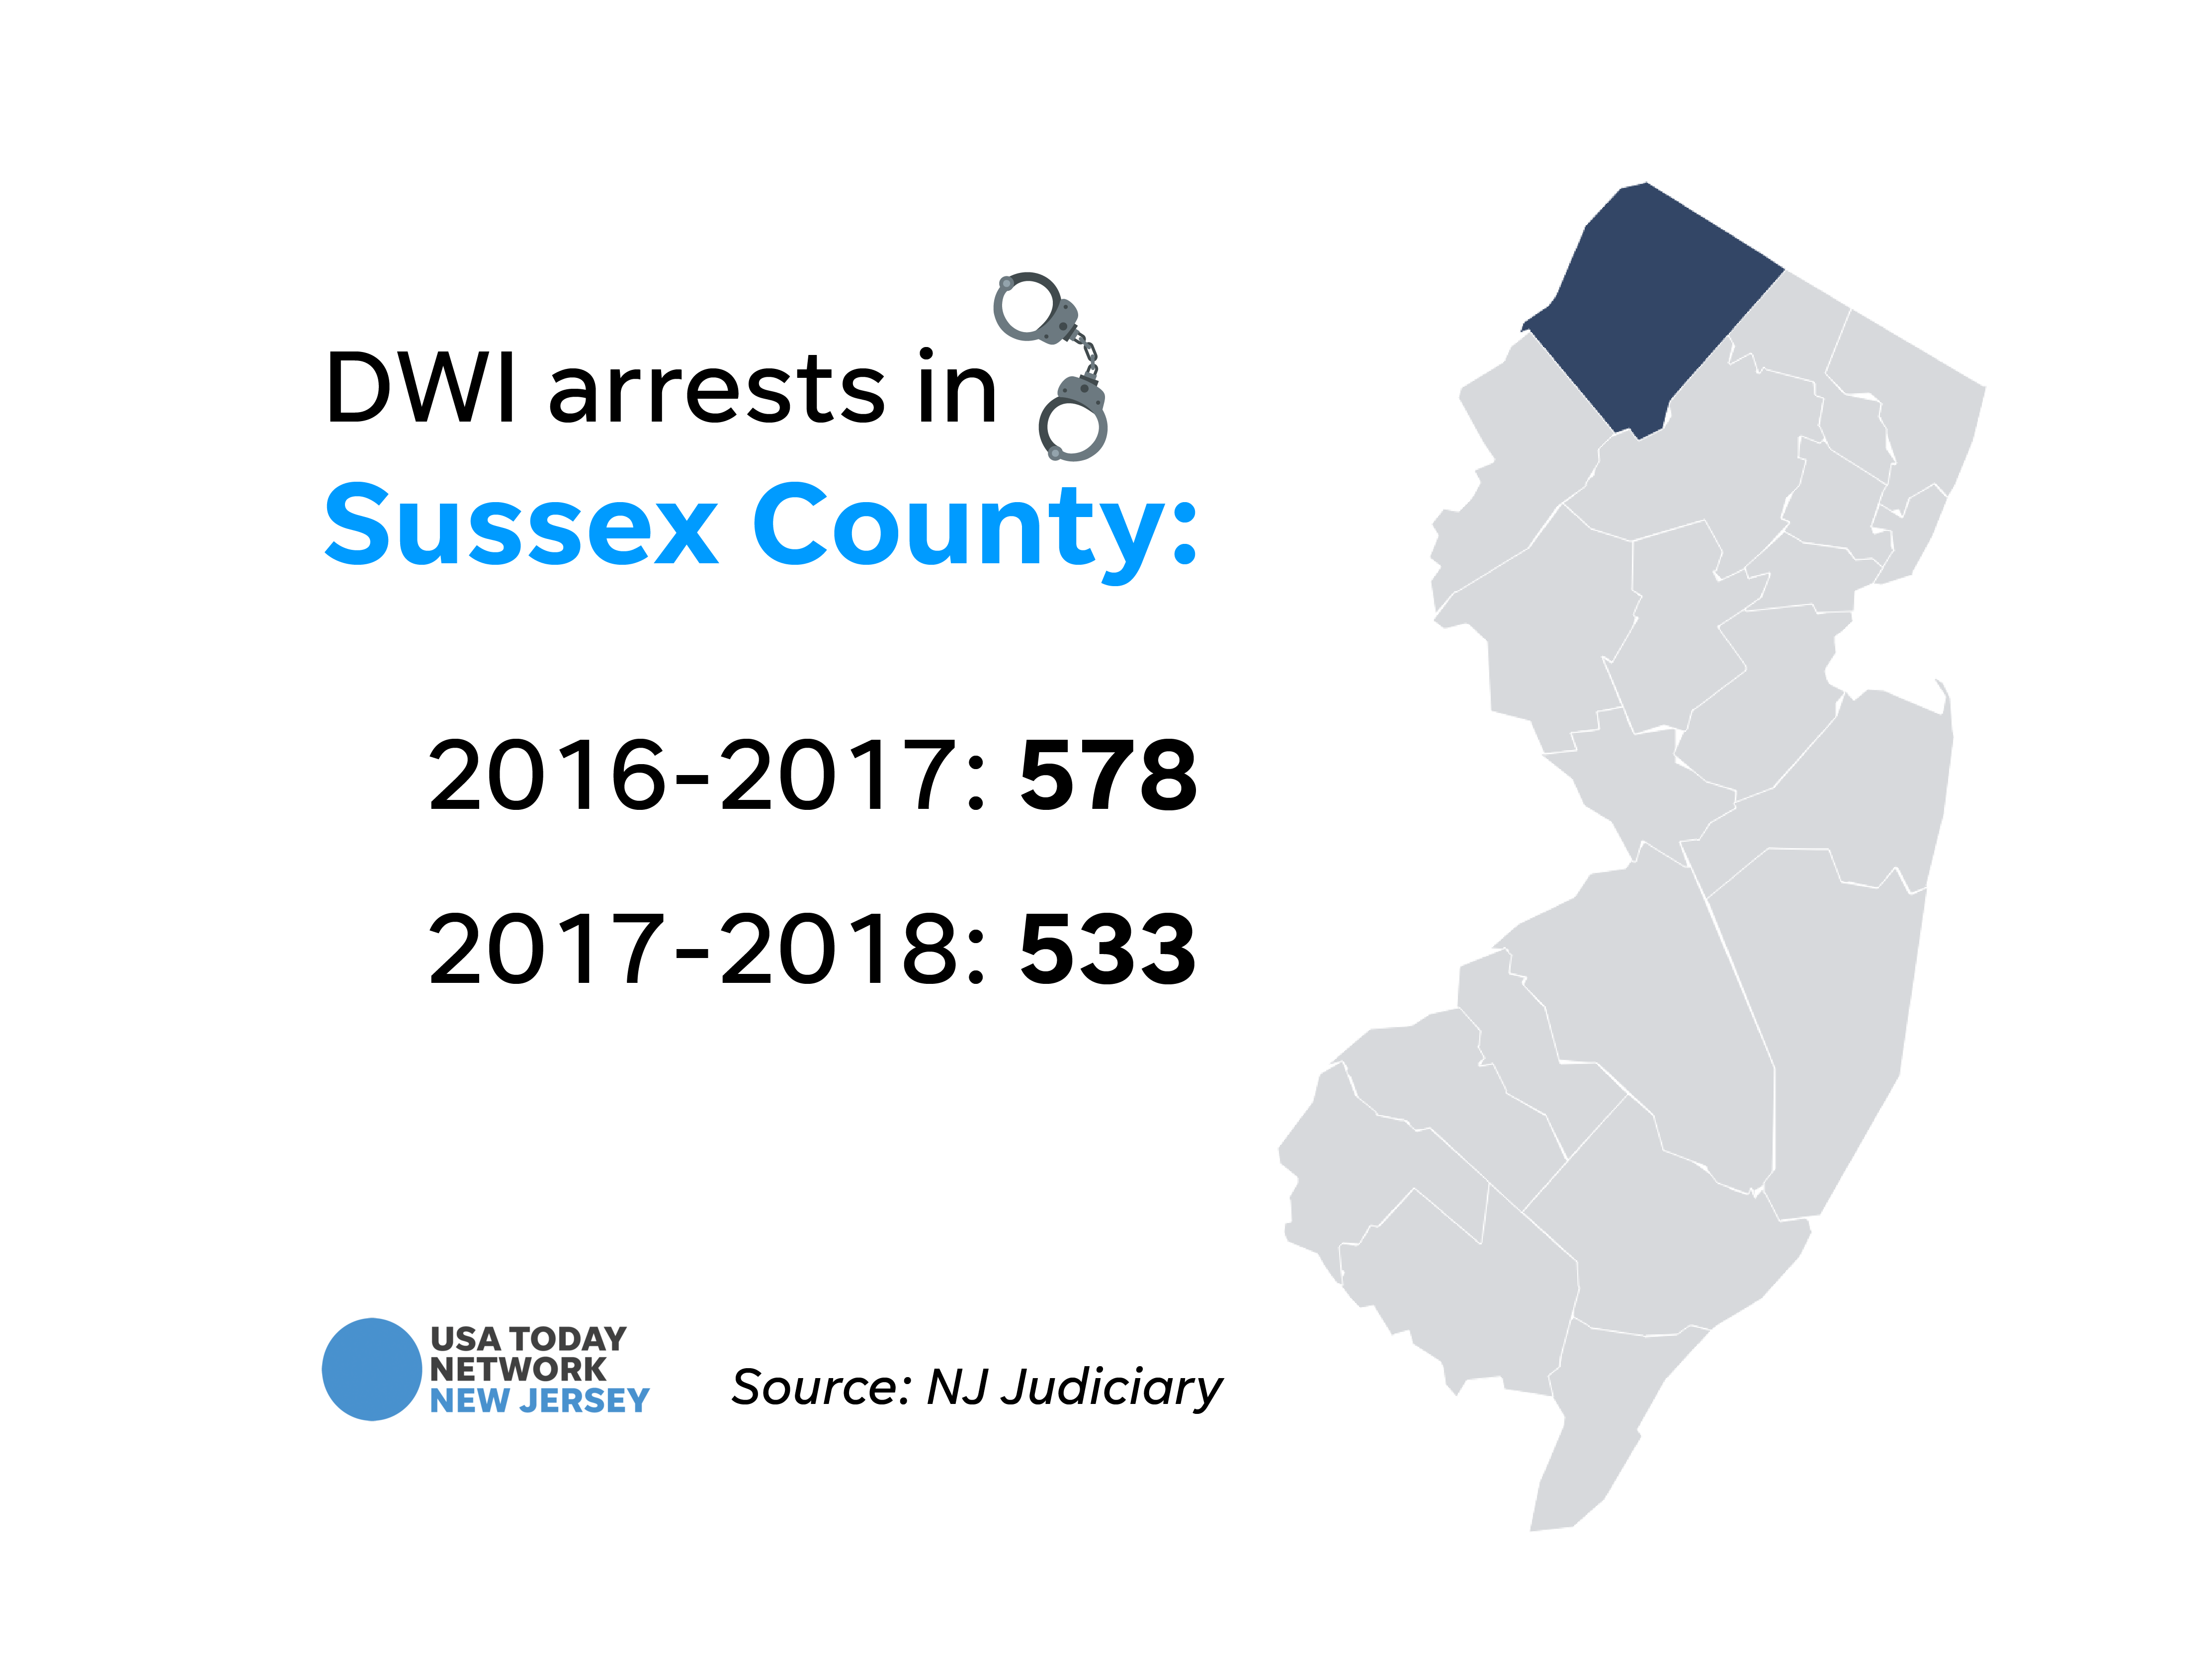 DWI arrests in Sussex County.